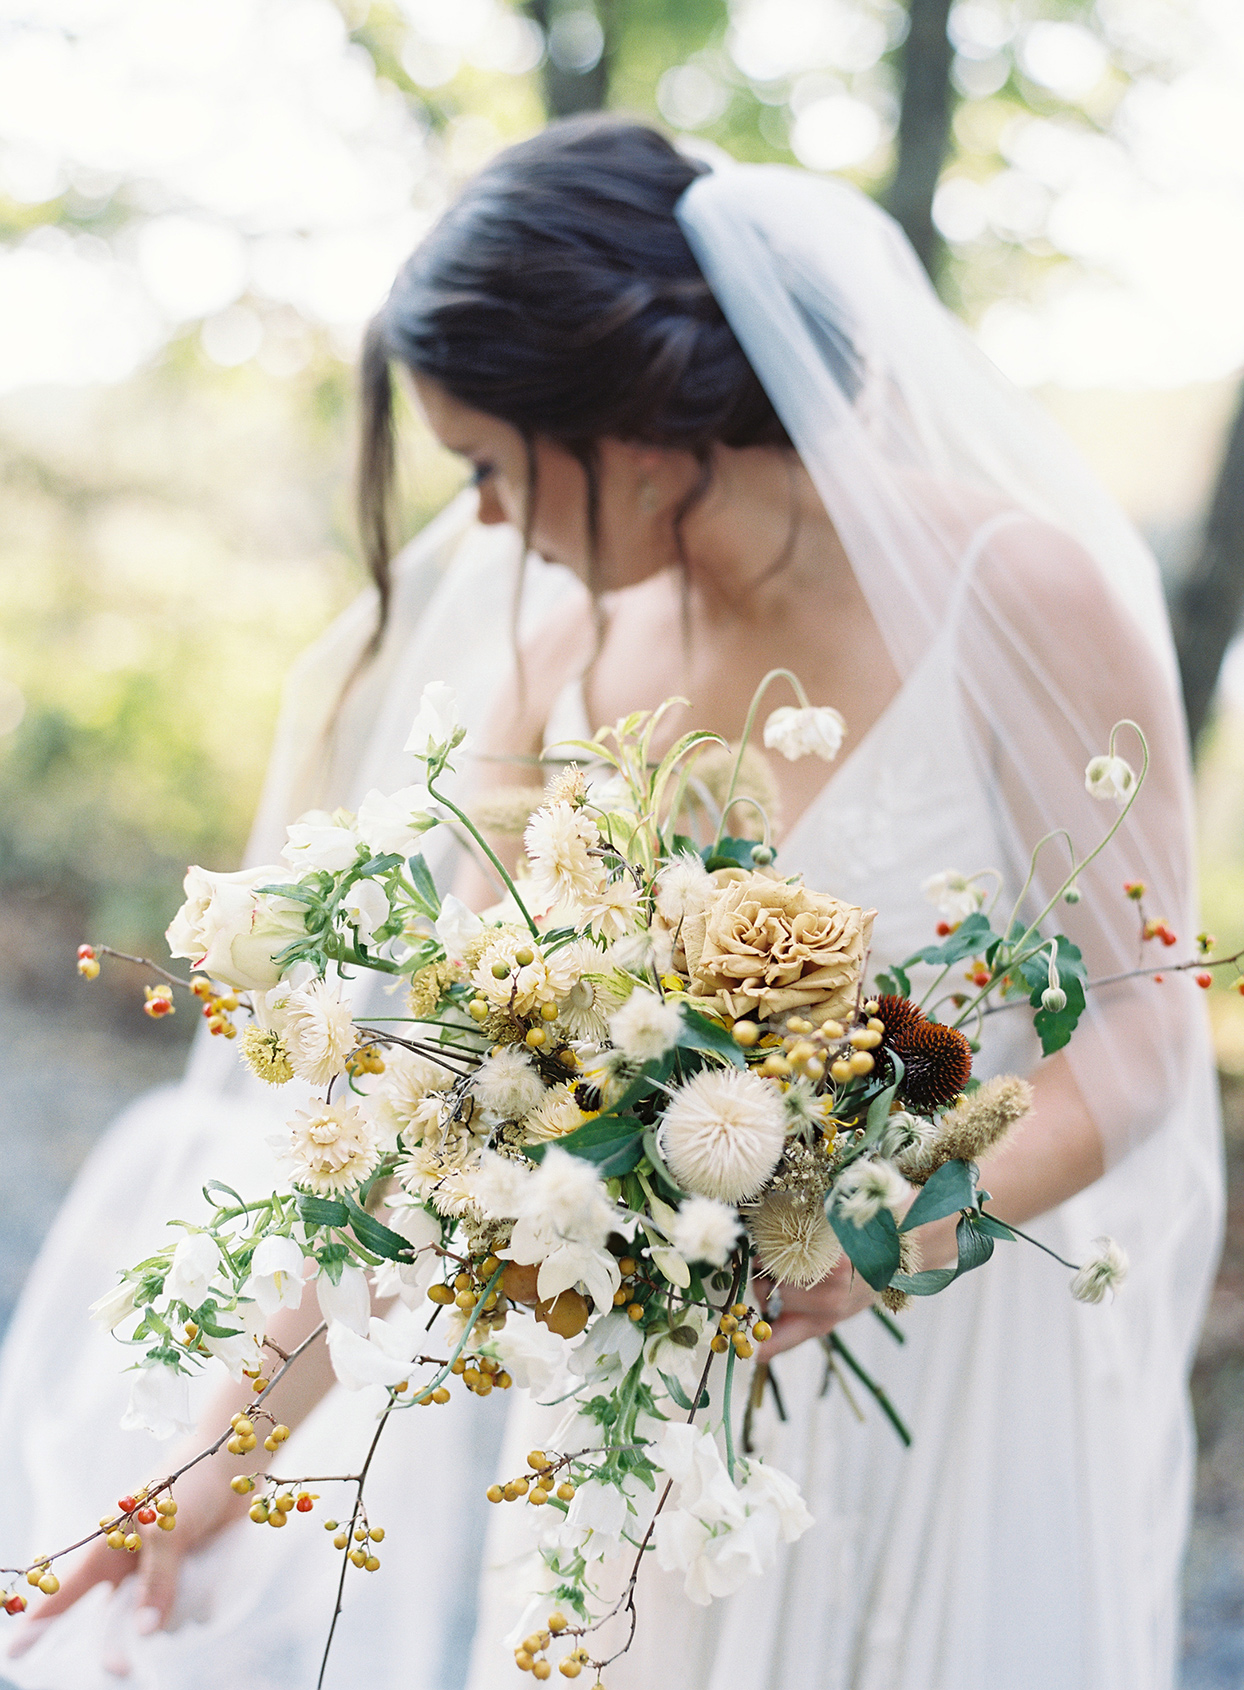 bride holding various floral and foliage rustic styled wedding bouquet